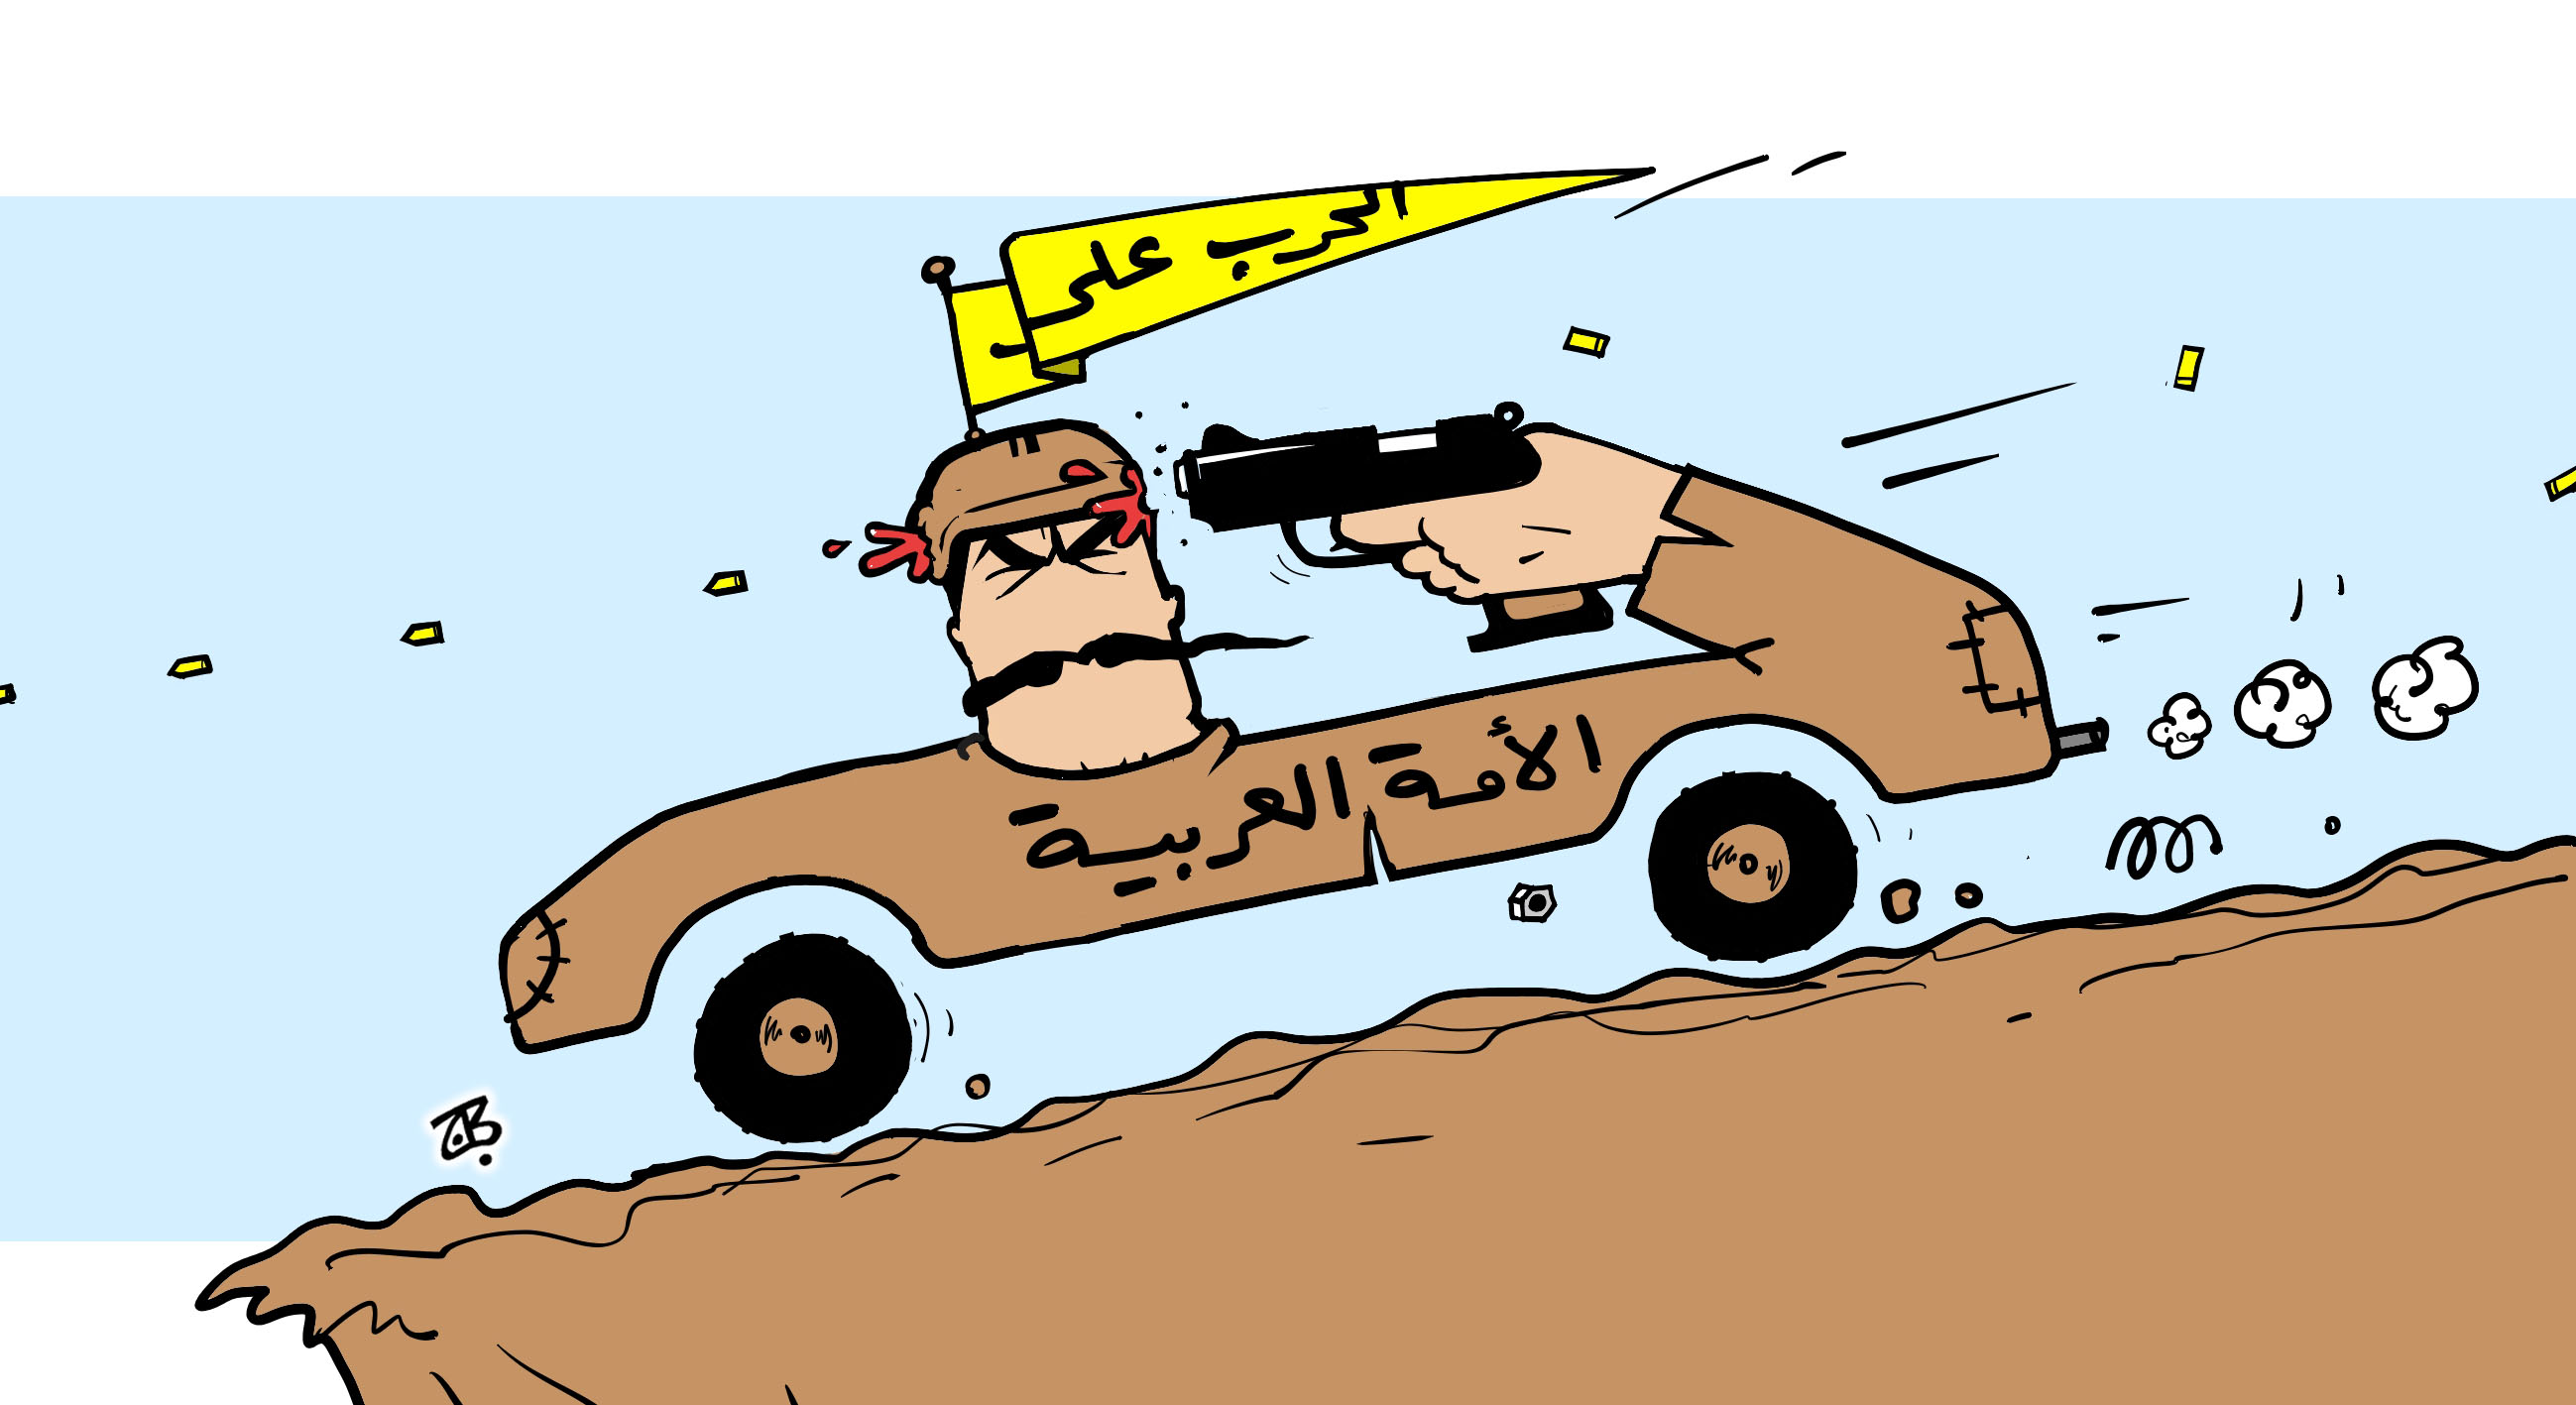 War on Arab Nation Hmmer car suicide terro 15-12-27